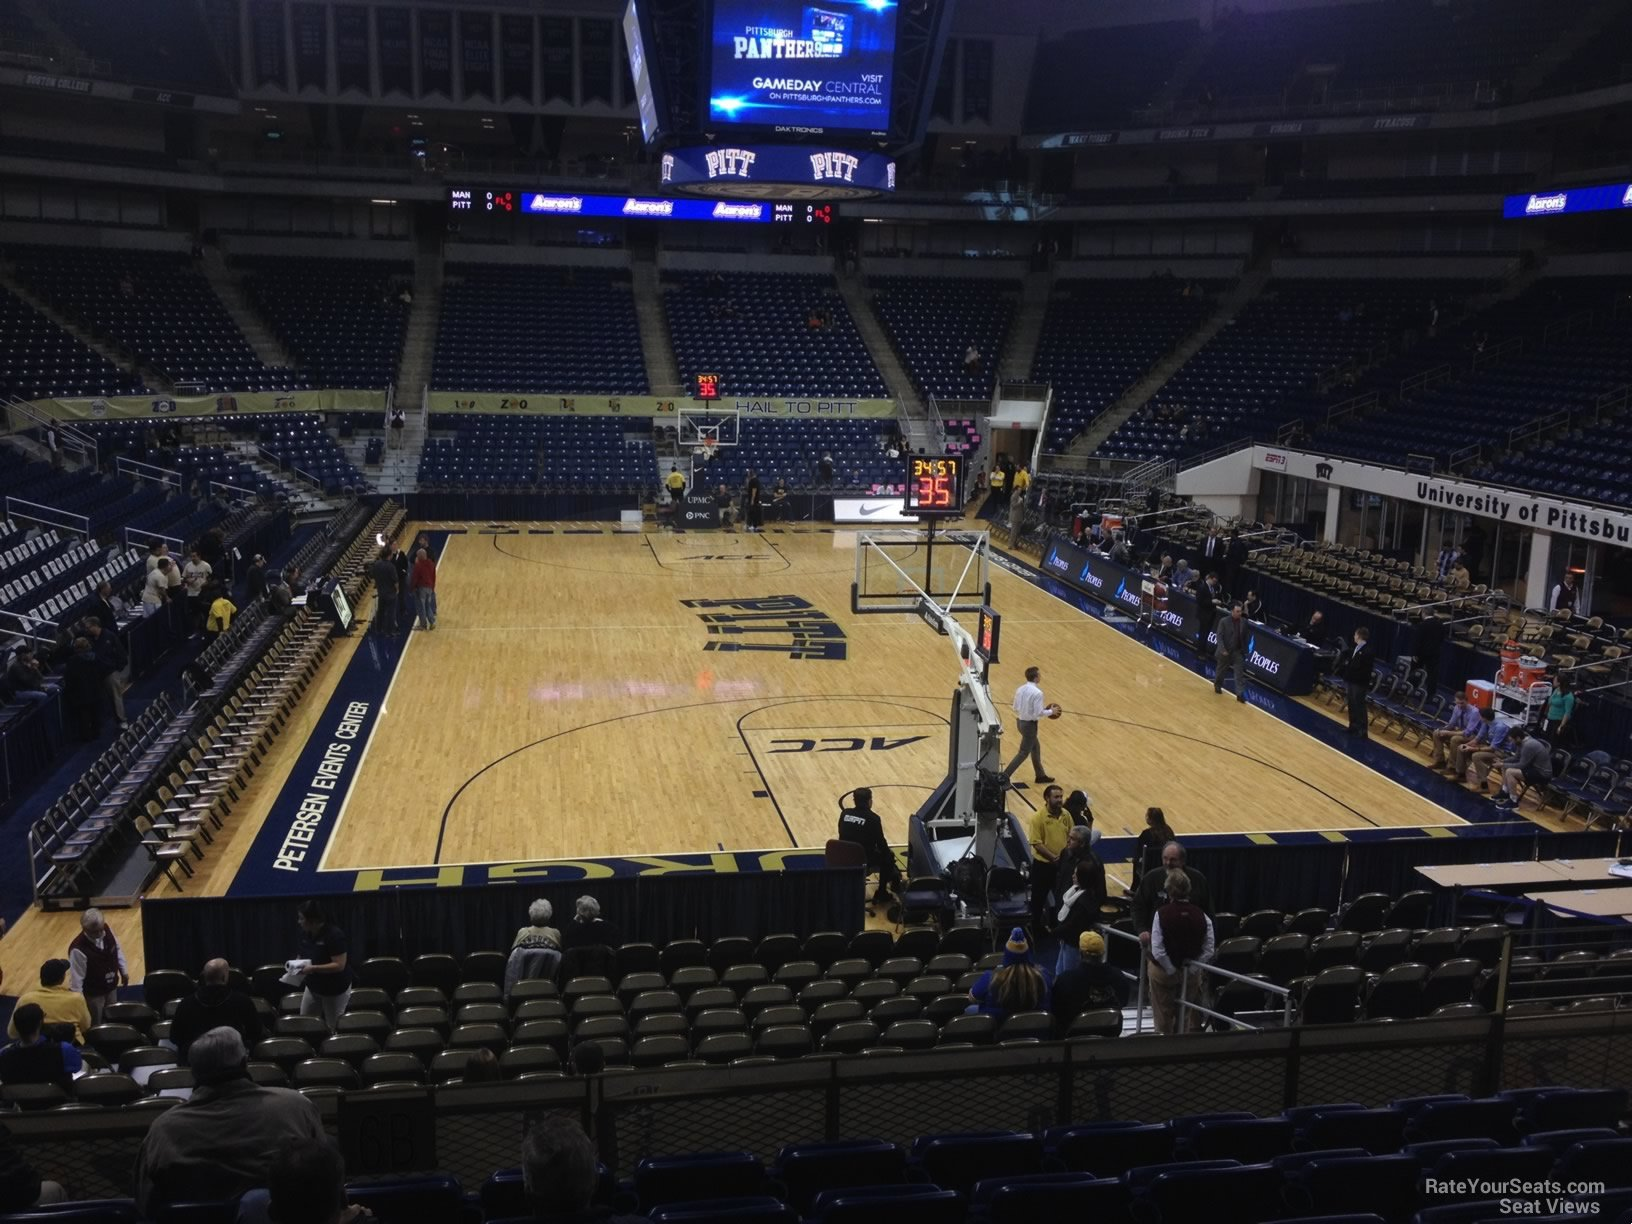 Seat View for Petersen Events Center Section 102, Row N